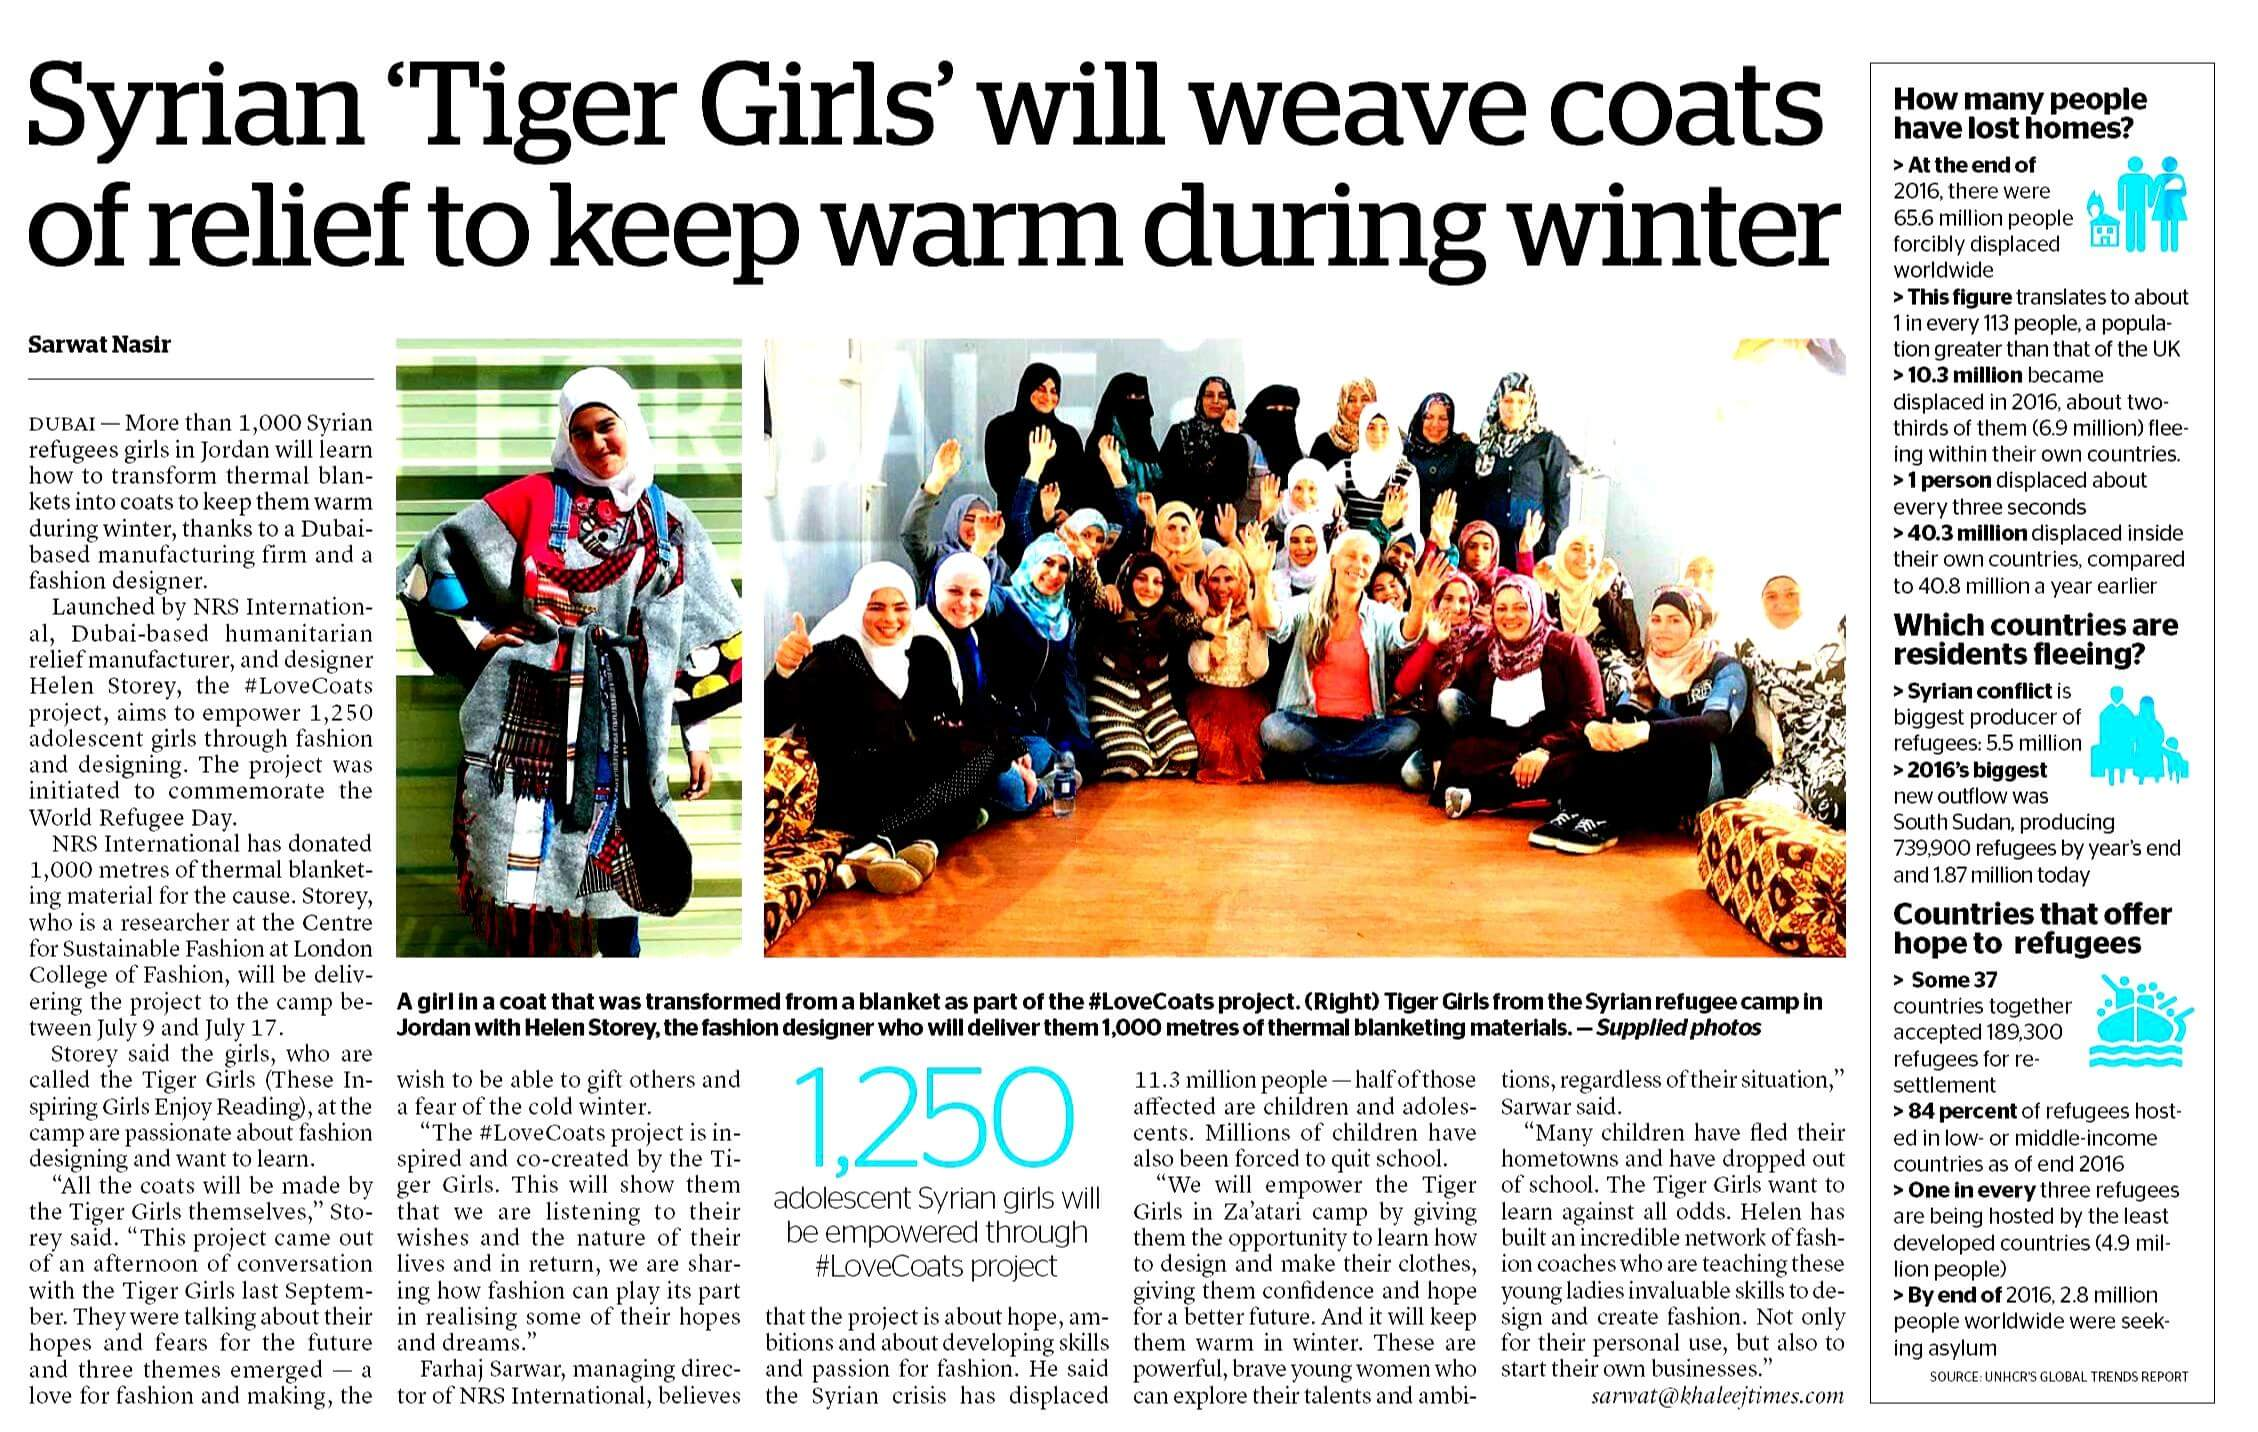 #LoveCoats project makes headlines on World Refugee Day